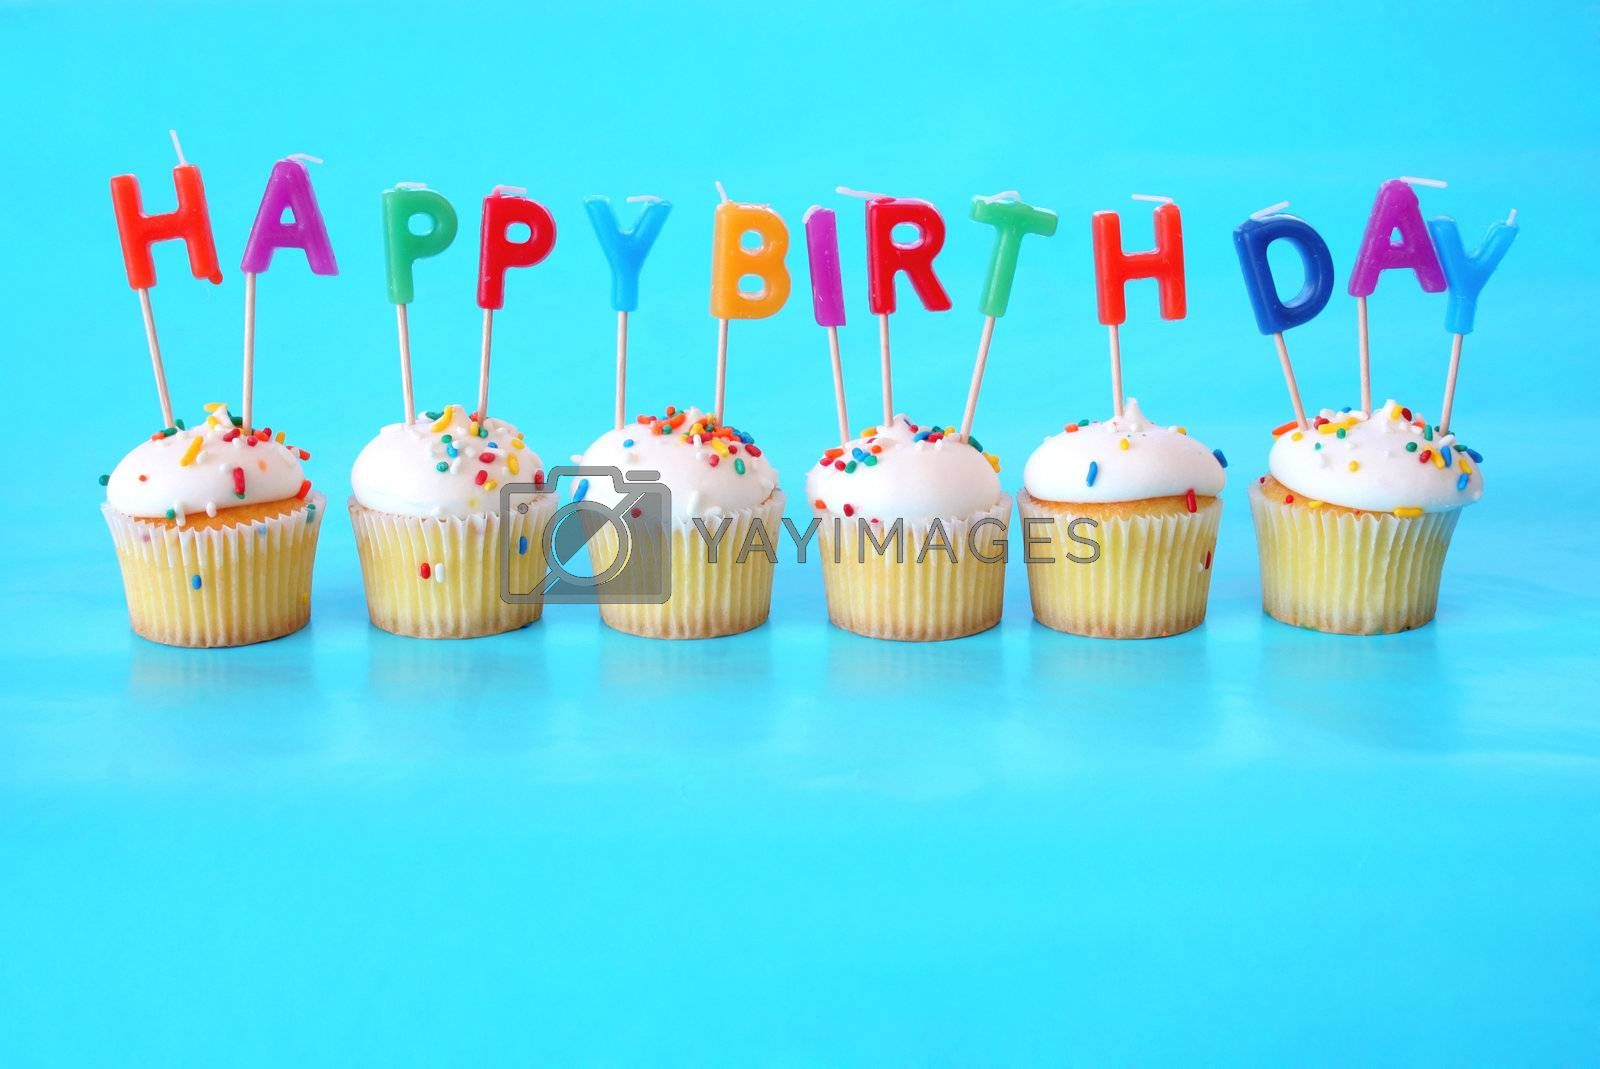 Cupcakes with Happy Birthday Candles on them against a blue background and plenty of room for copy space.